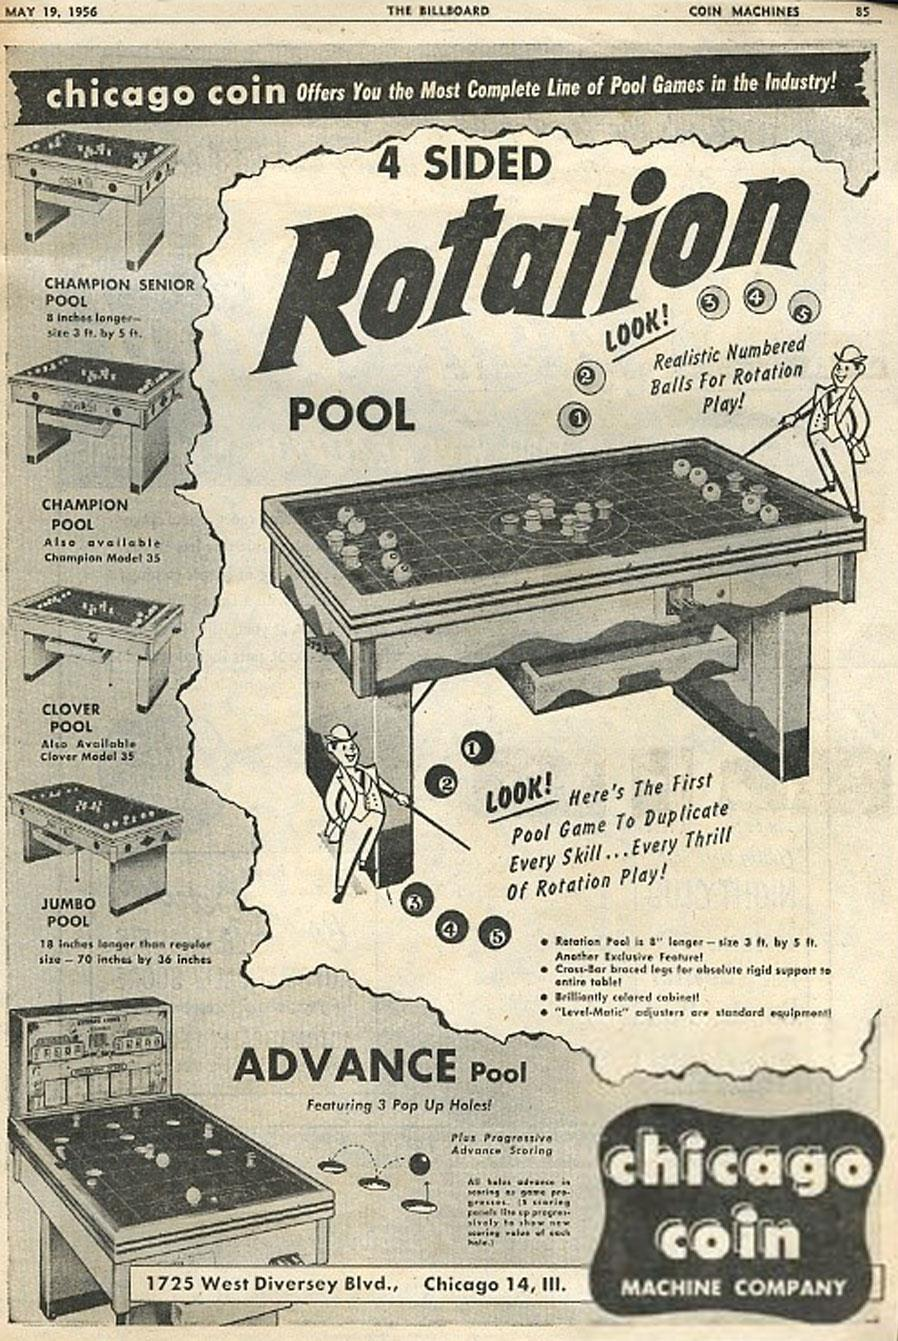 chicago-coin-bumper-pool-tables.jpg